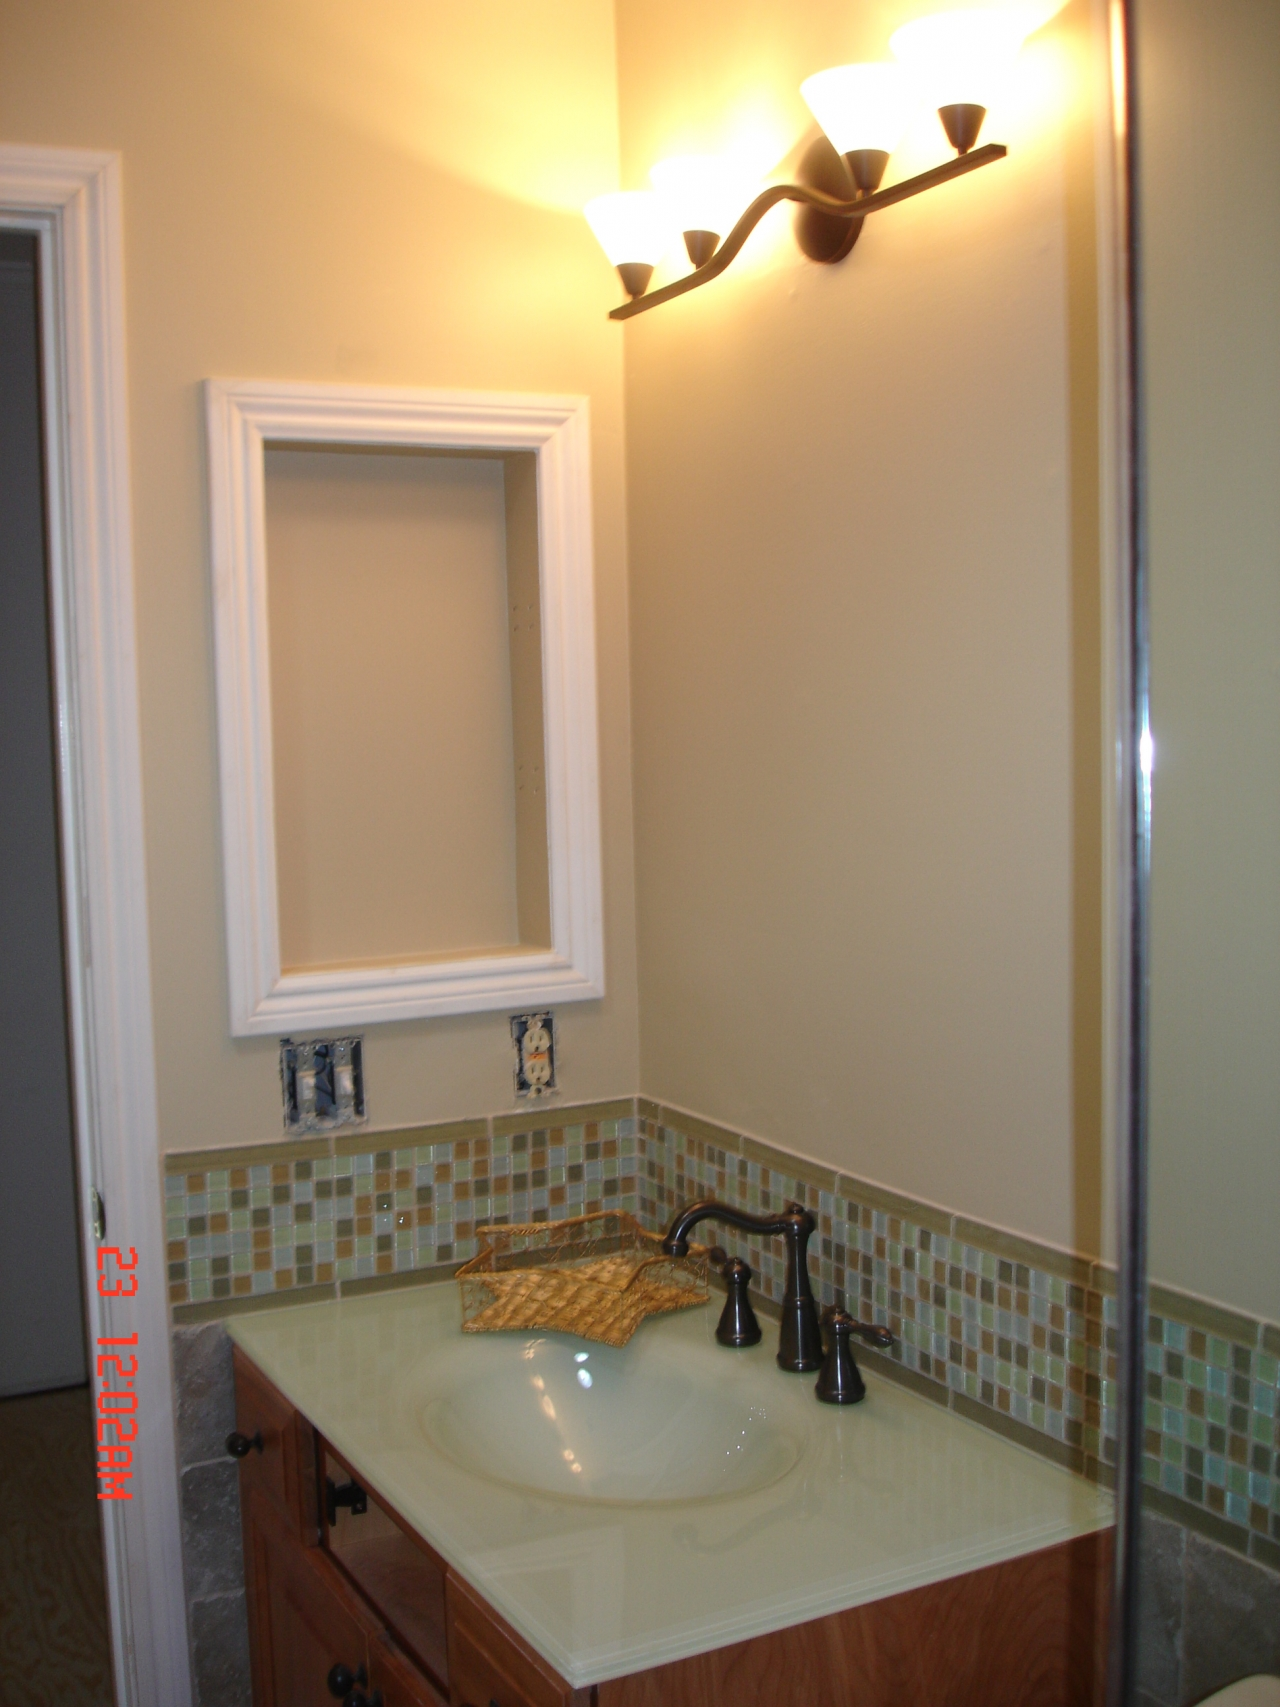 Bathroom Remodel Glass Tile bathroom remodel in benecia - john tanner general contractor